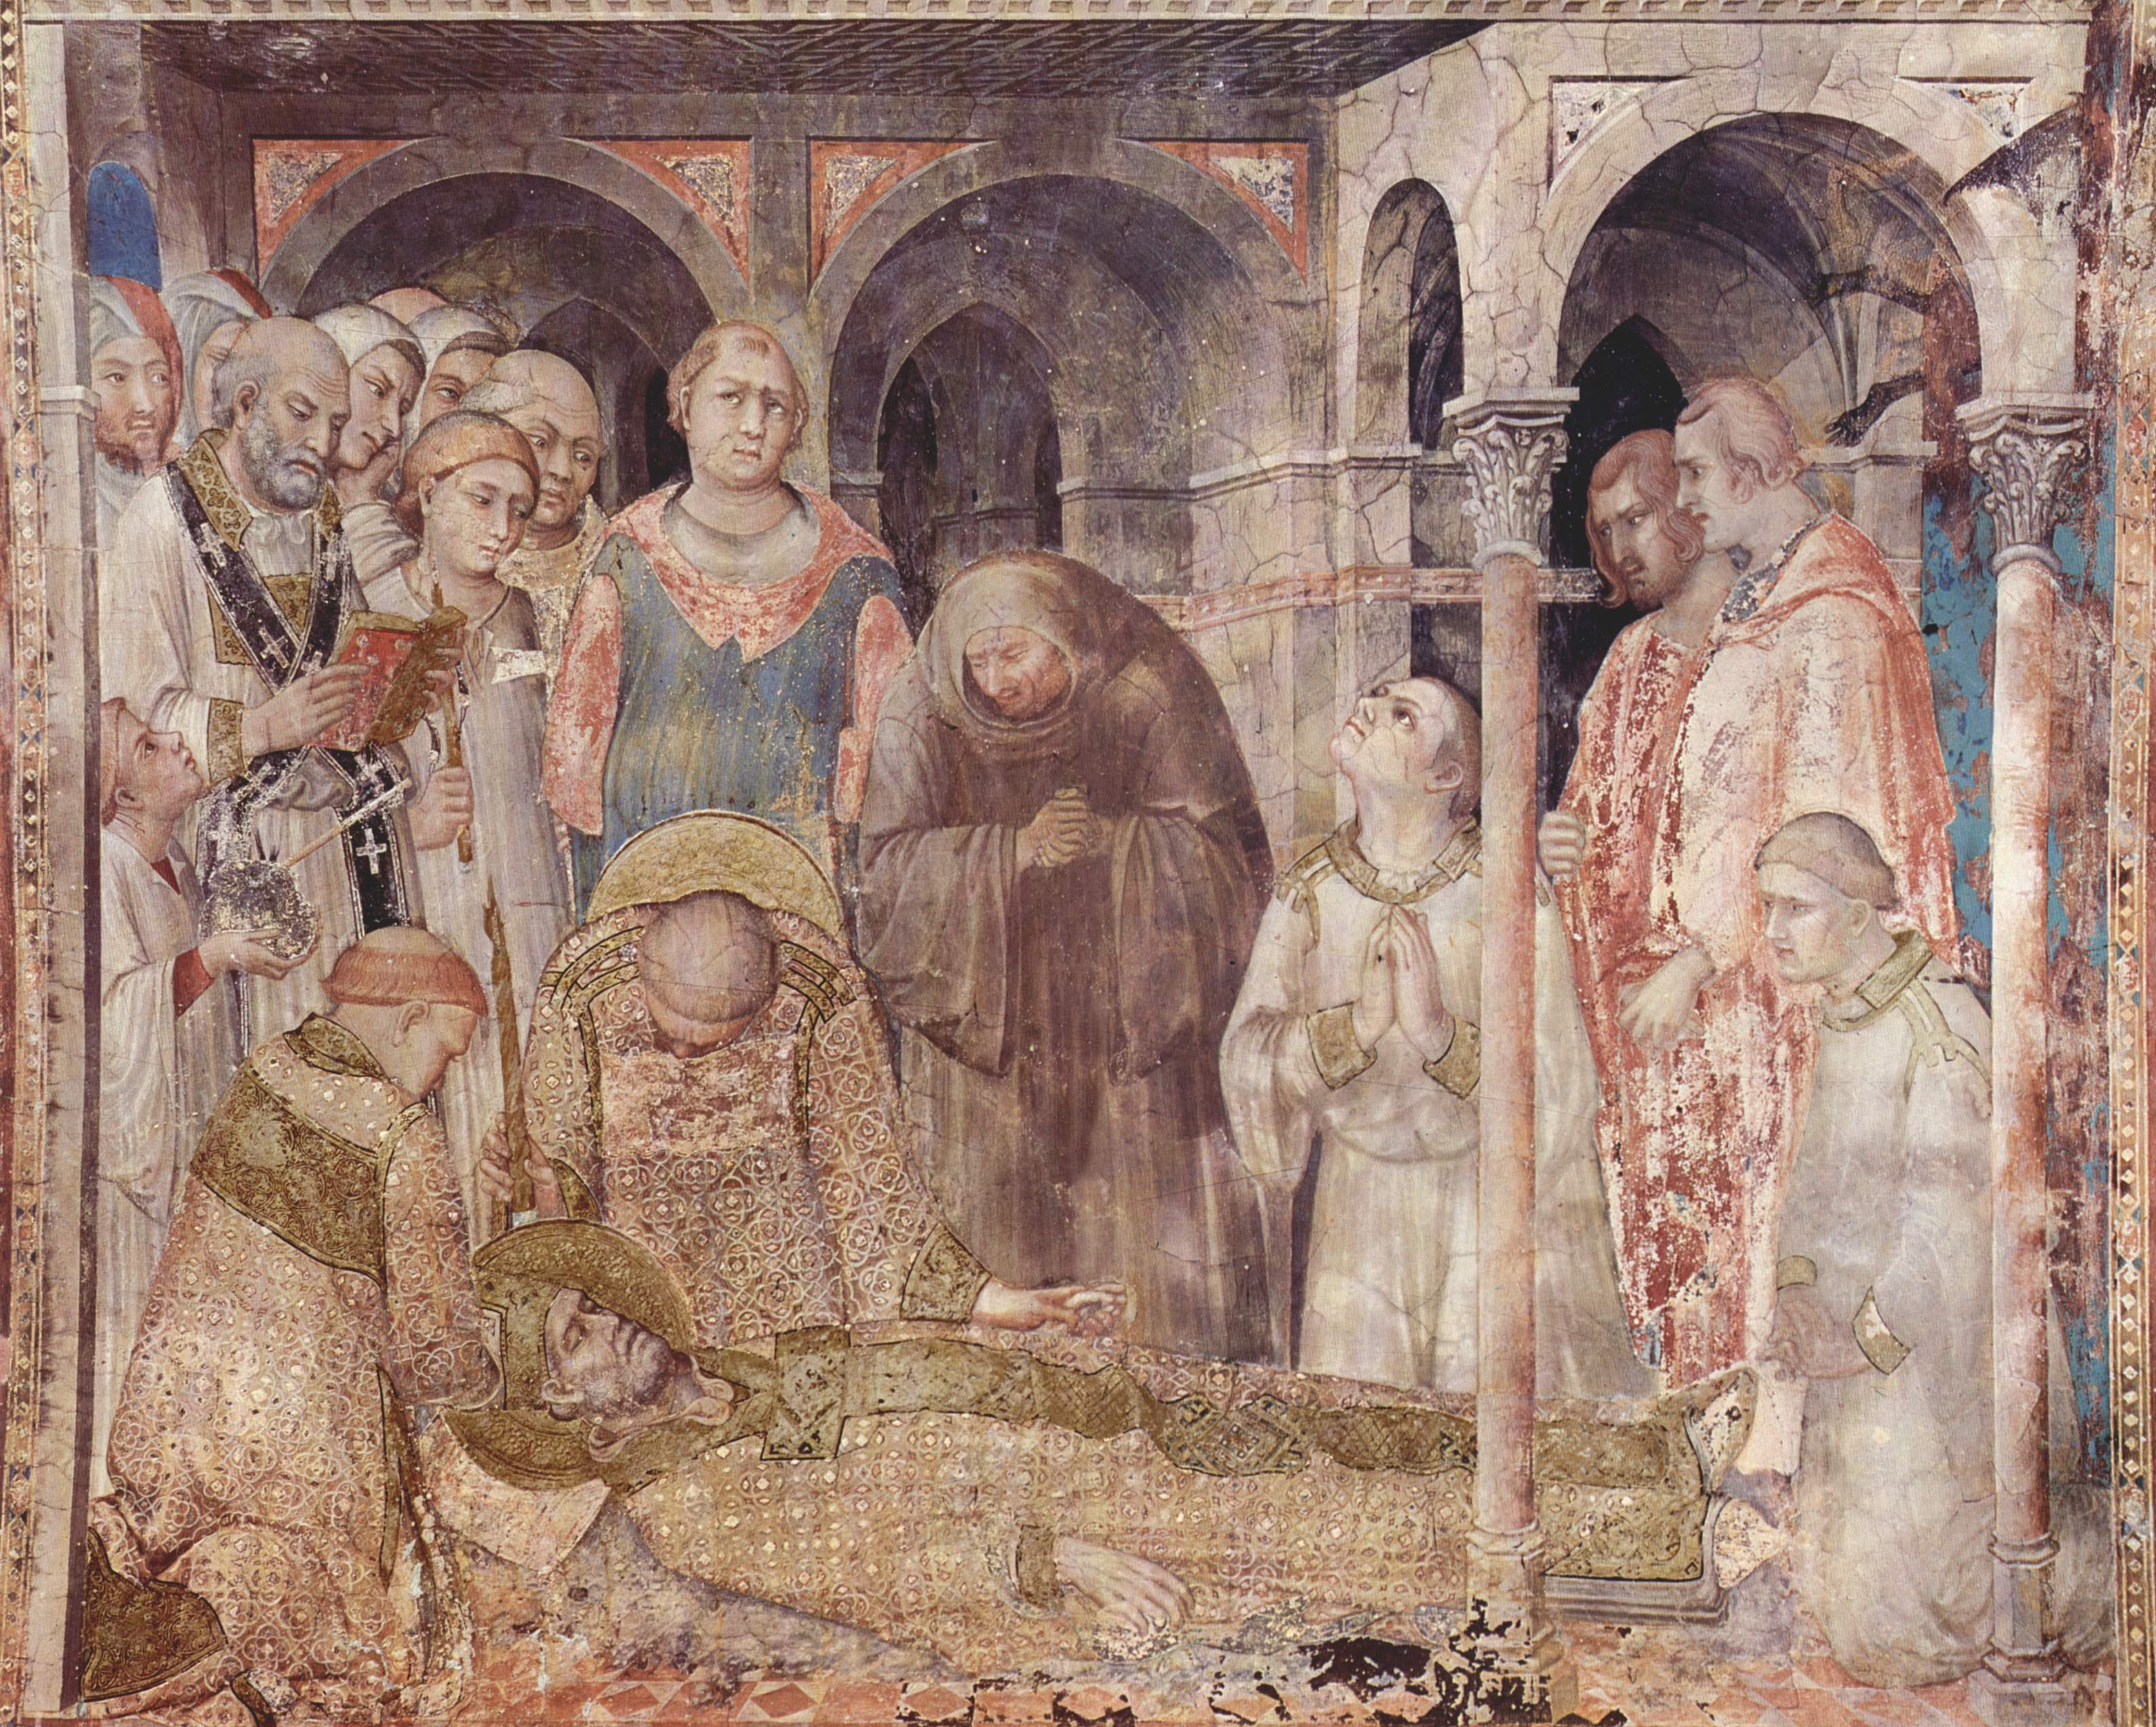 Cuadros De La Edad Media File:simone Martini 041.jpg - Wikimedia Commons